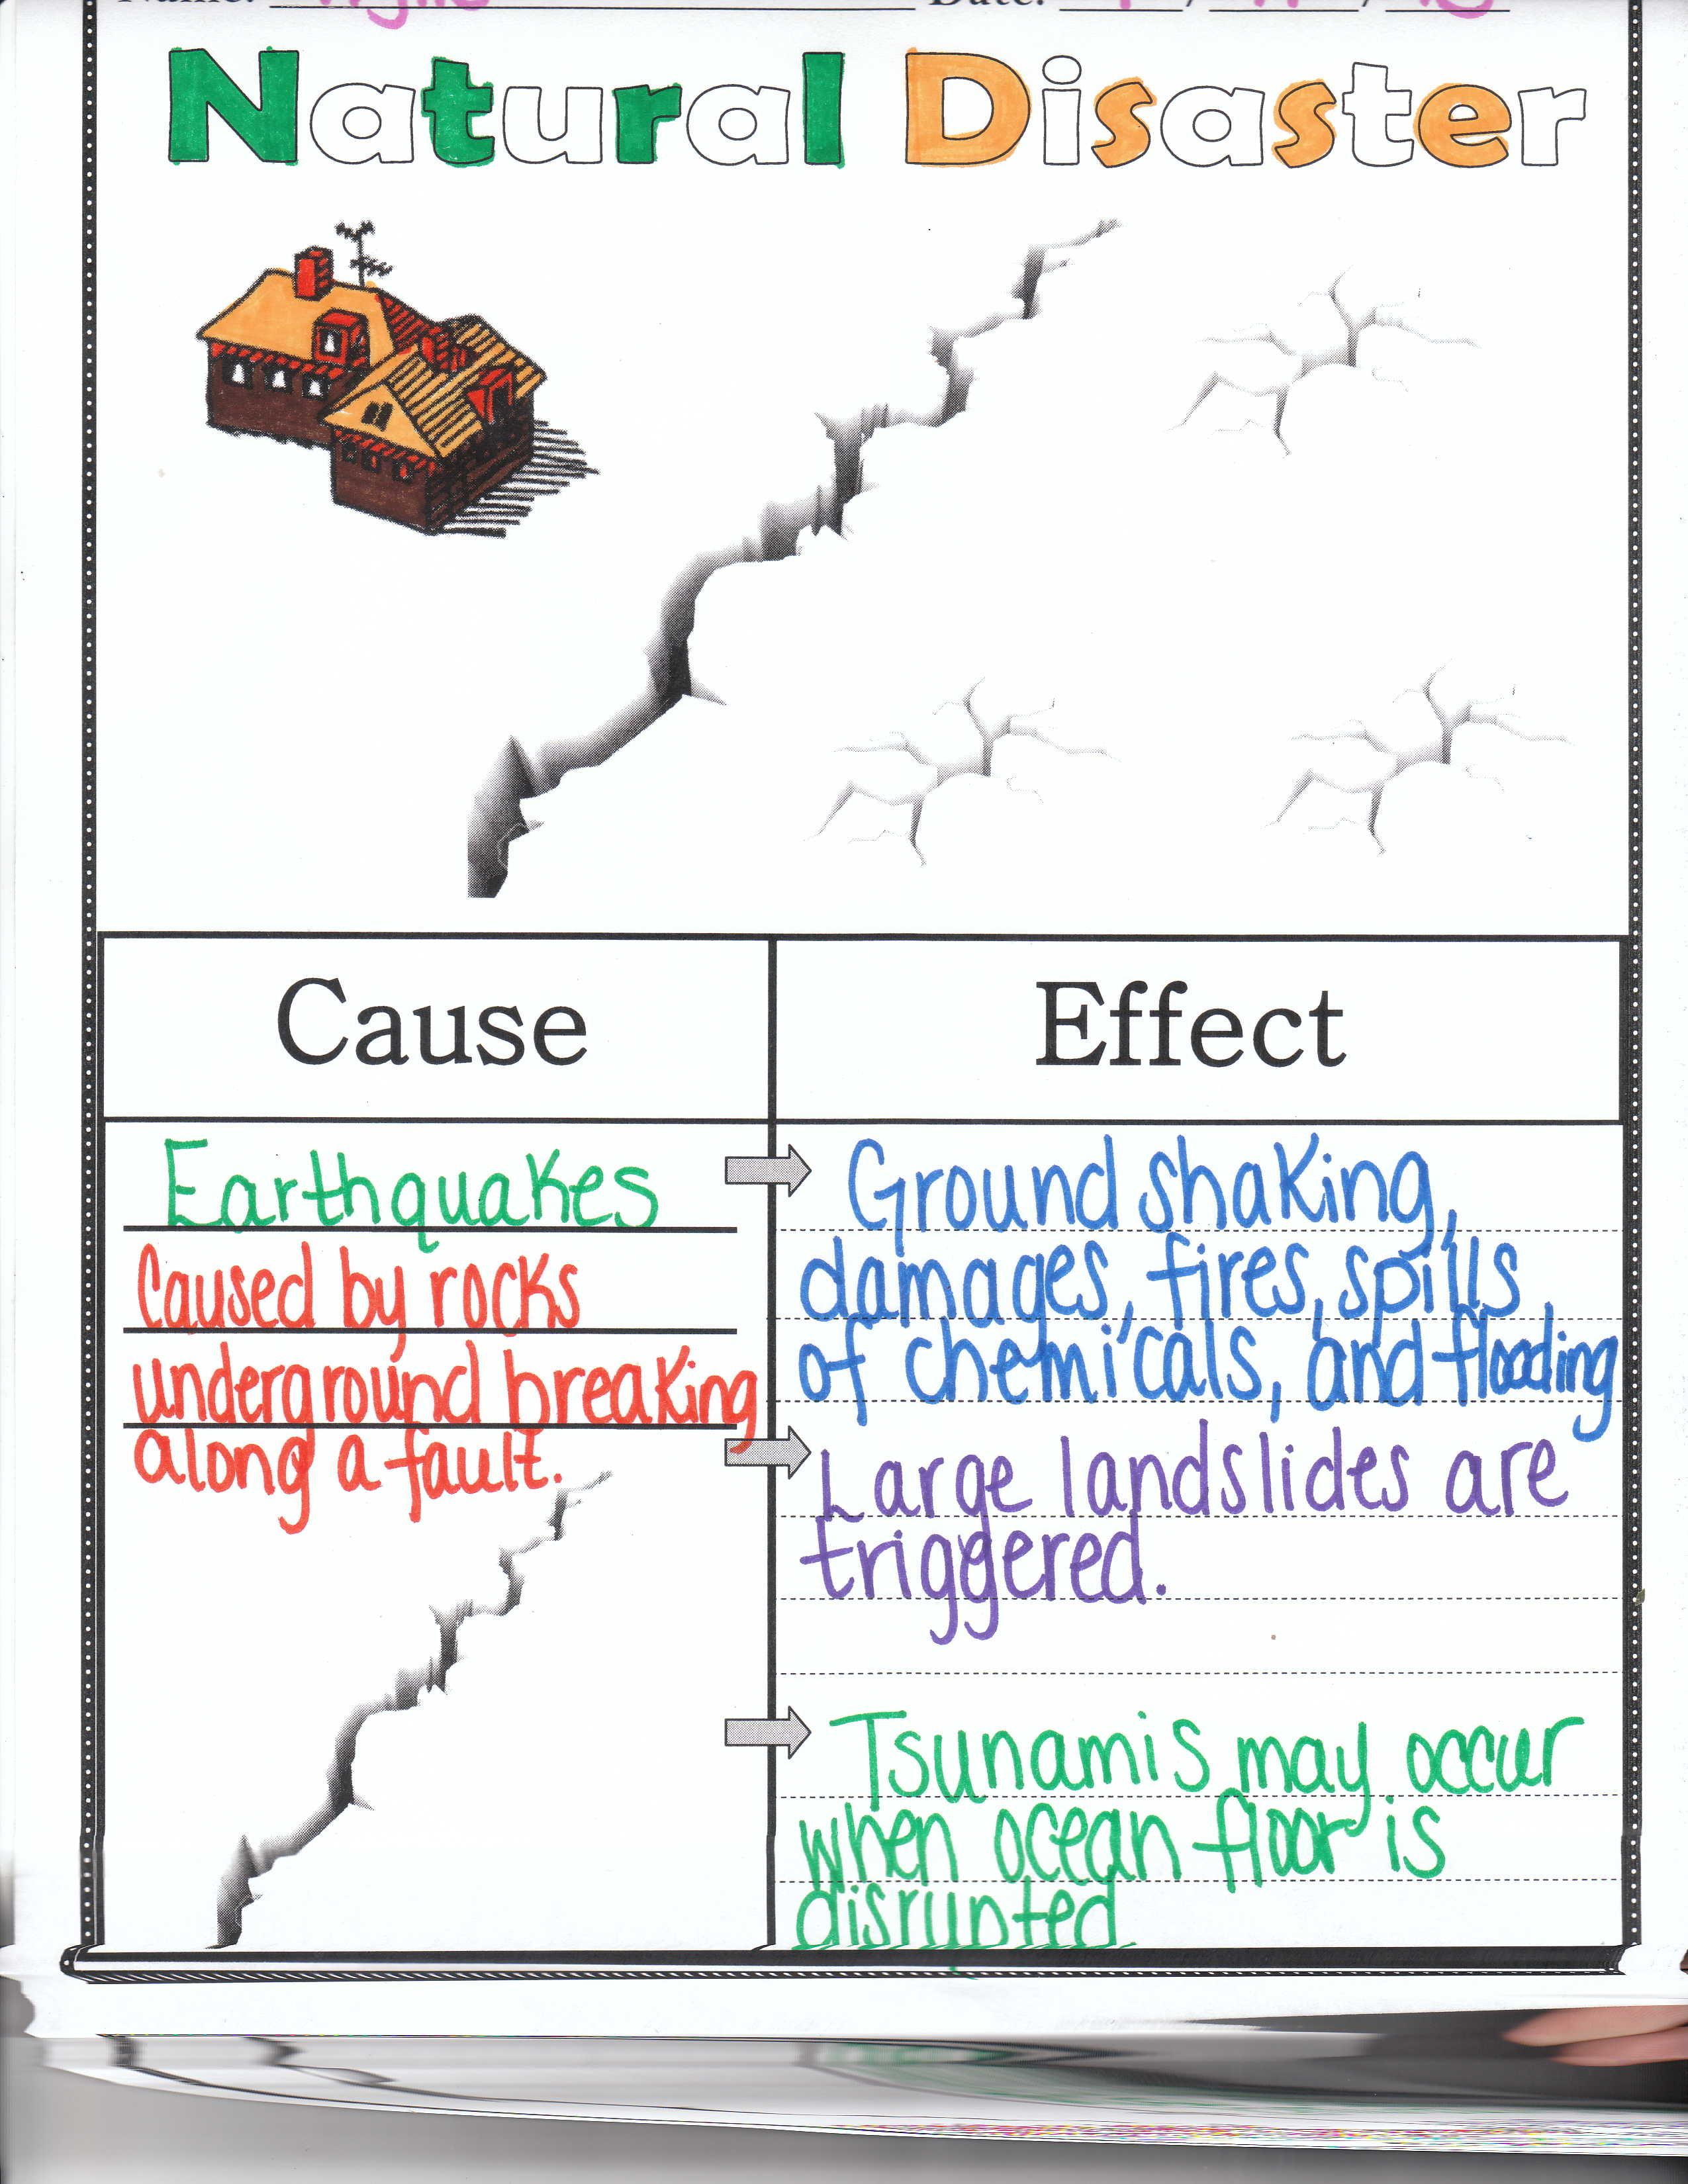 medium resolution of Natural Disasters Worksheets For 2nd Grade   Printable Worksheets and  Activities for Teachers